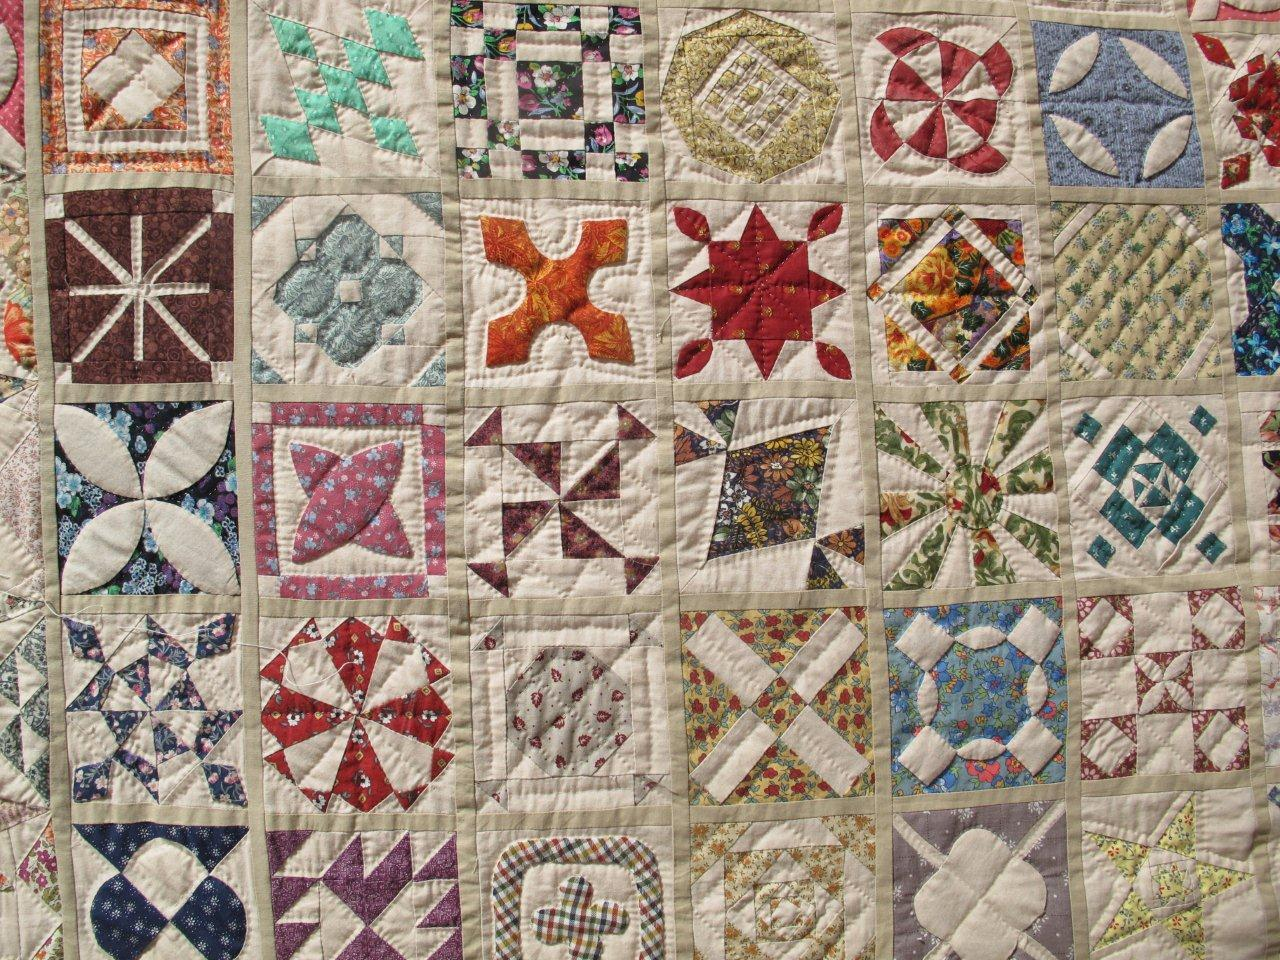 Expo patch 8